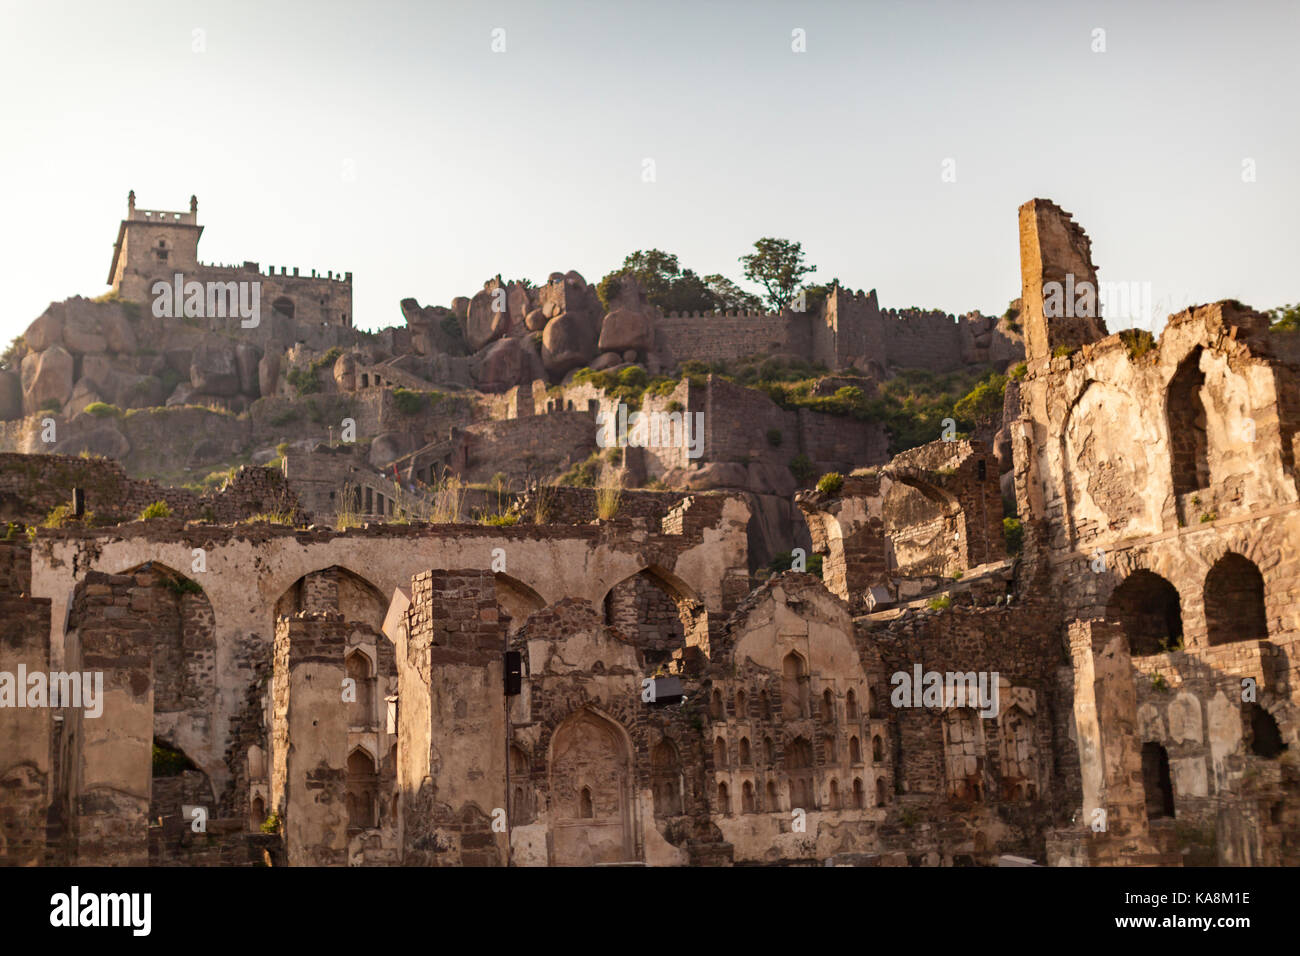 Golconda, Gol konda, is a citadel and fort in Southern India - Stock Image